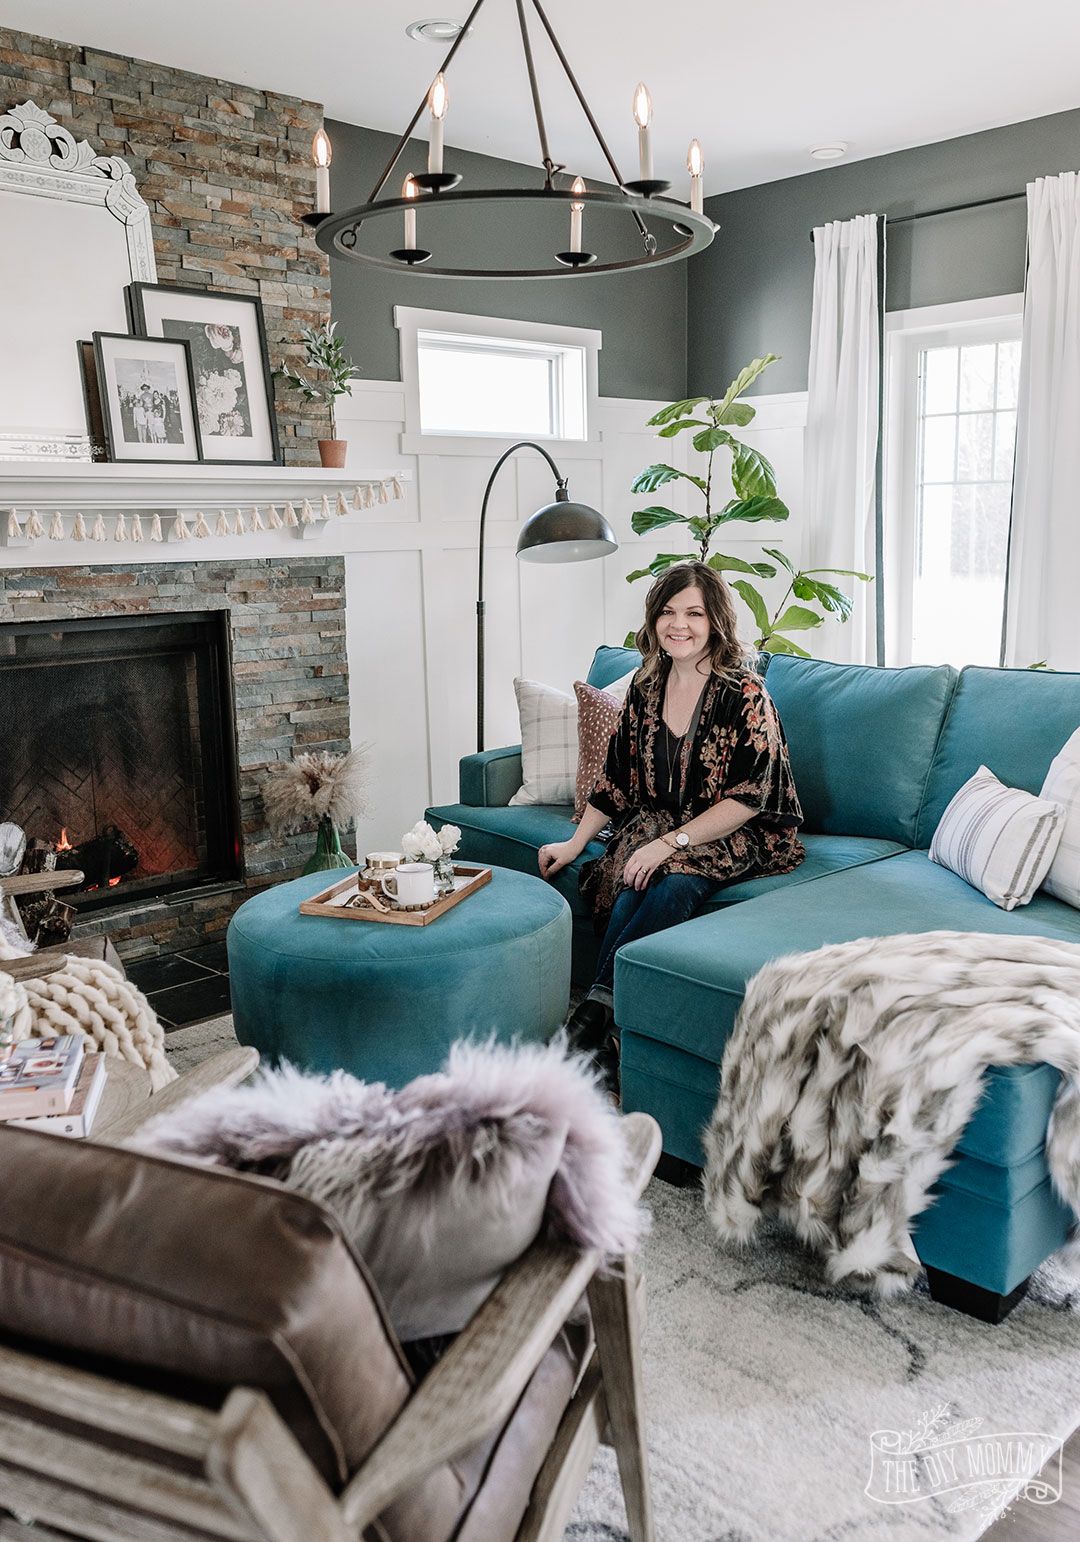 Design My Own Living Room Online Free: Our Eclectic Living Room Refresh With A Custom Velvet